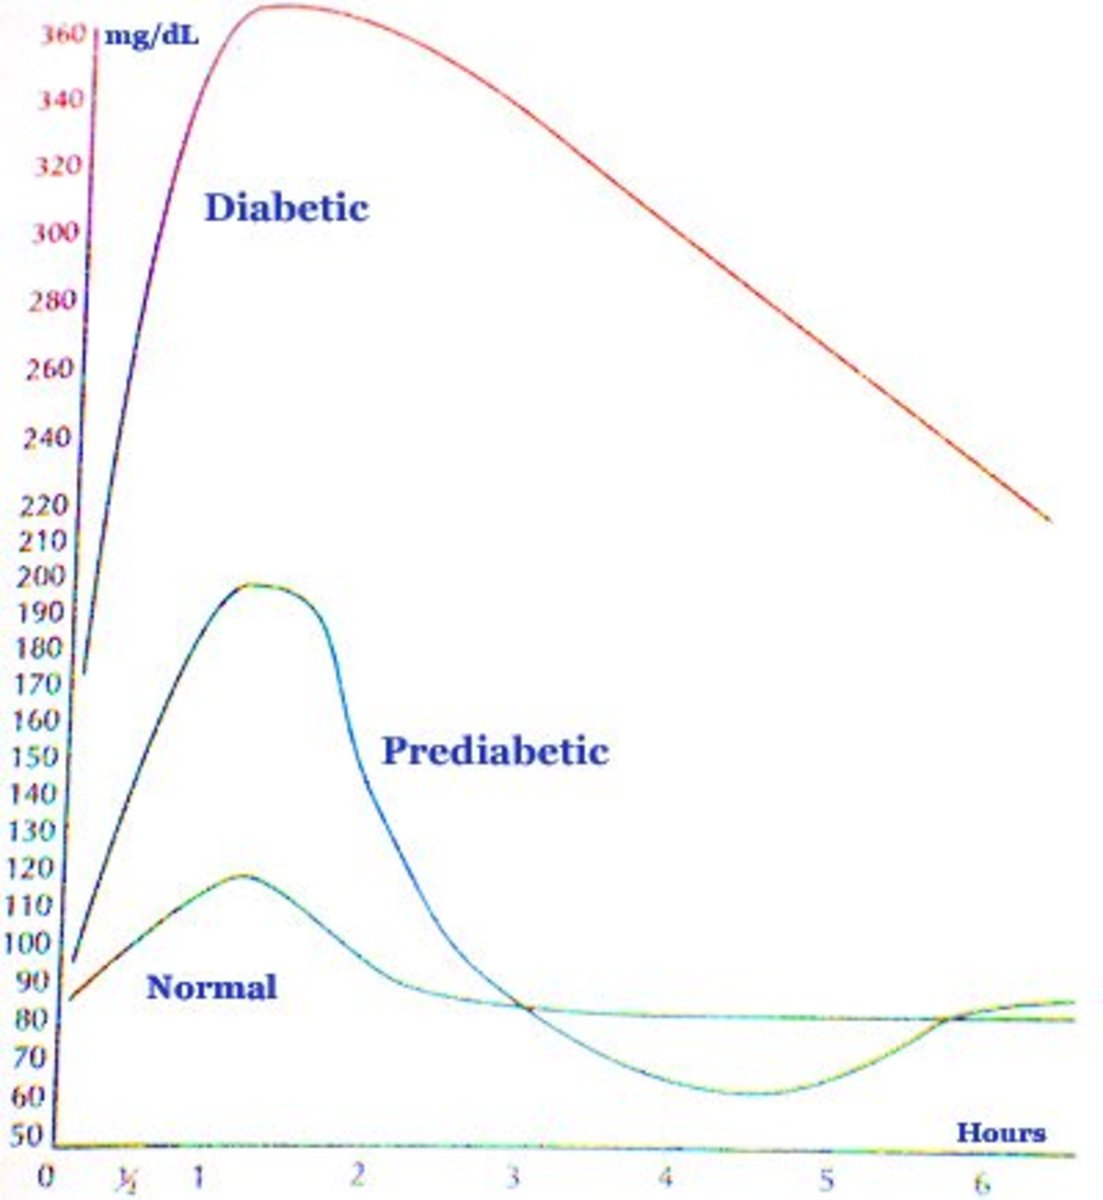 Diabetic blood-glucose levels chart